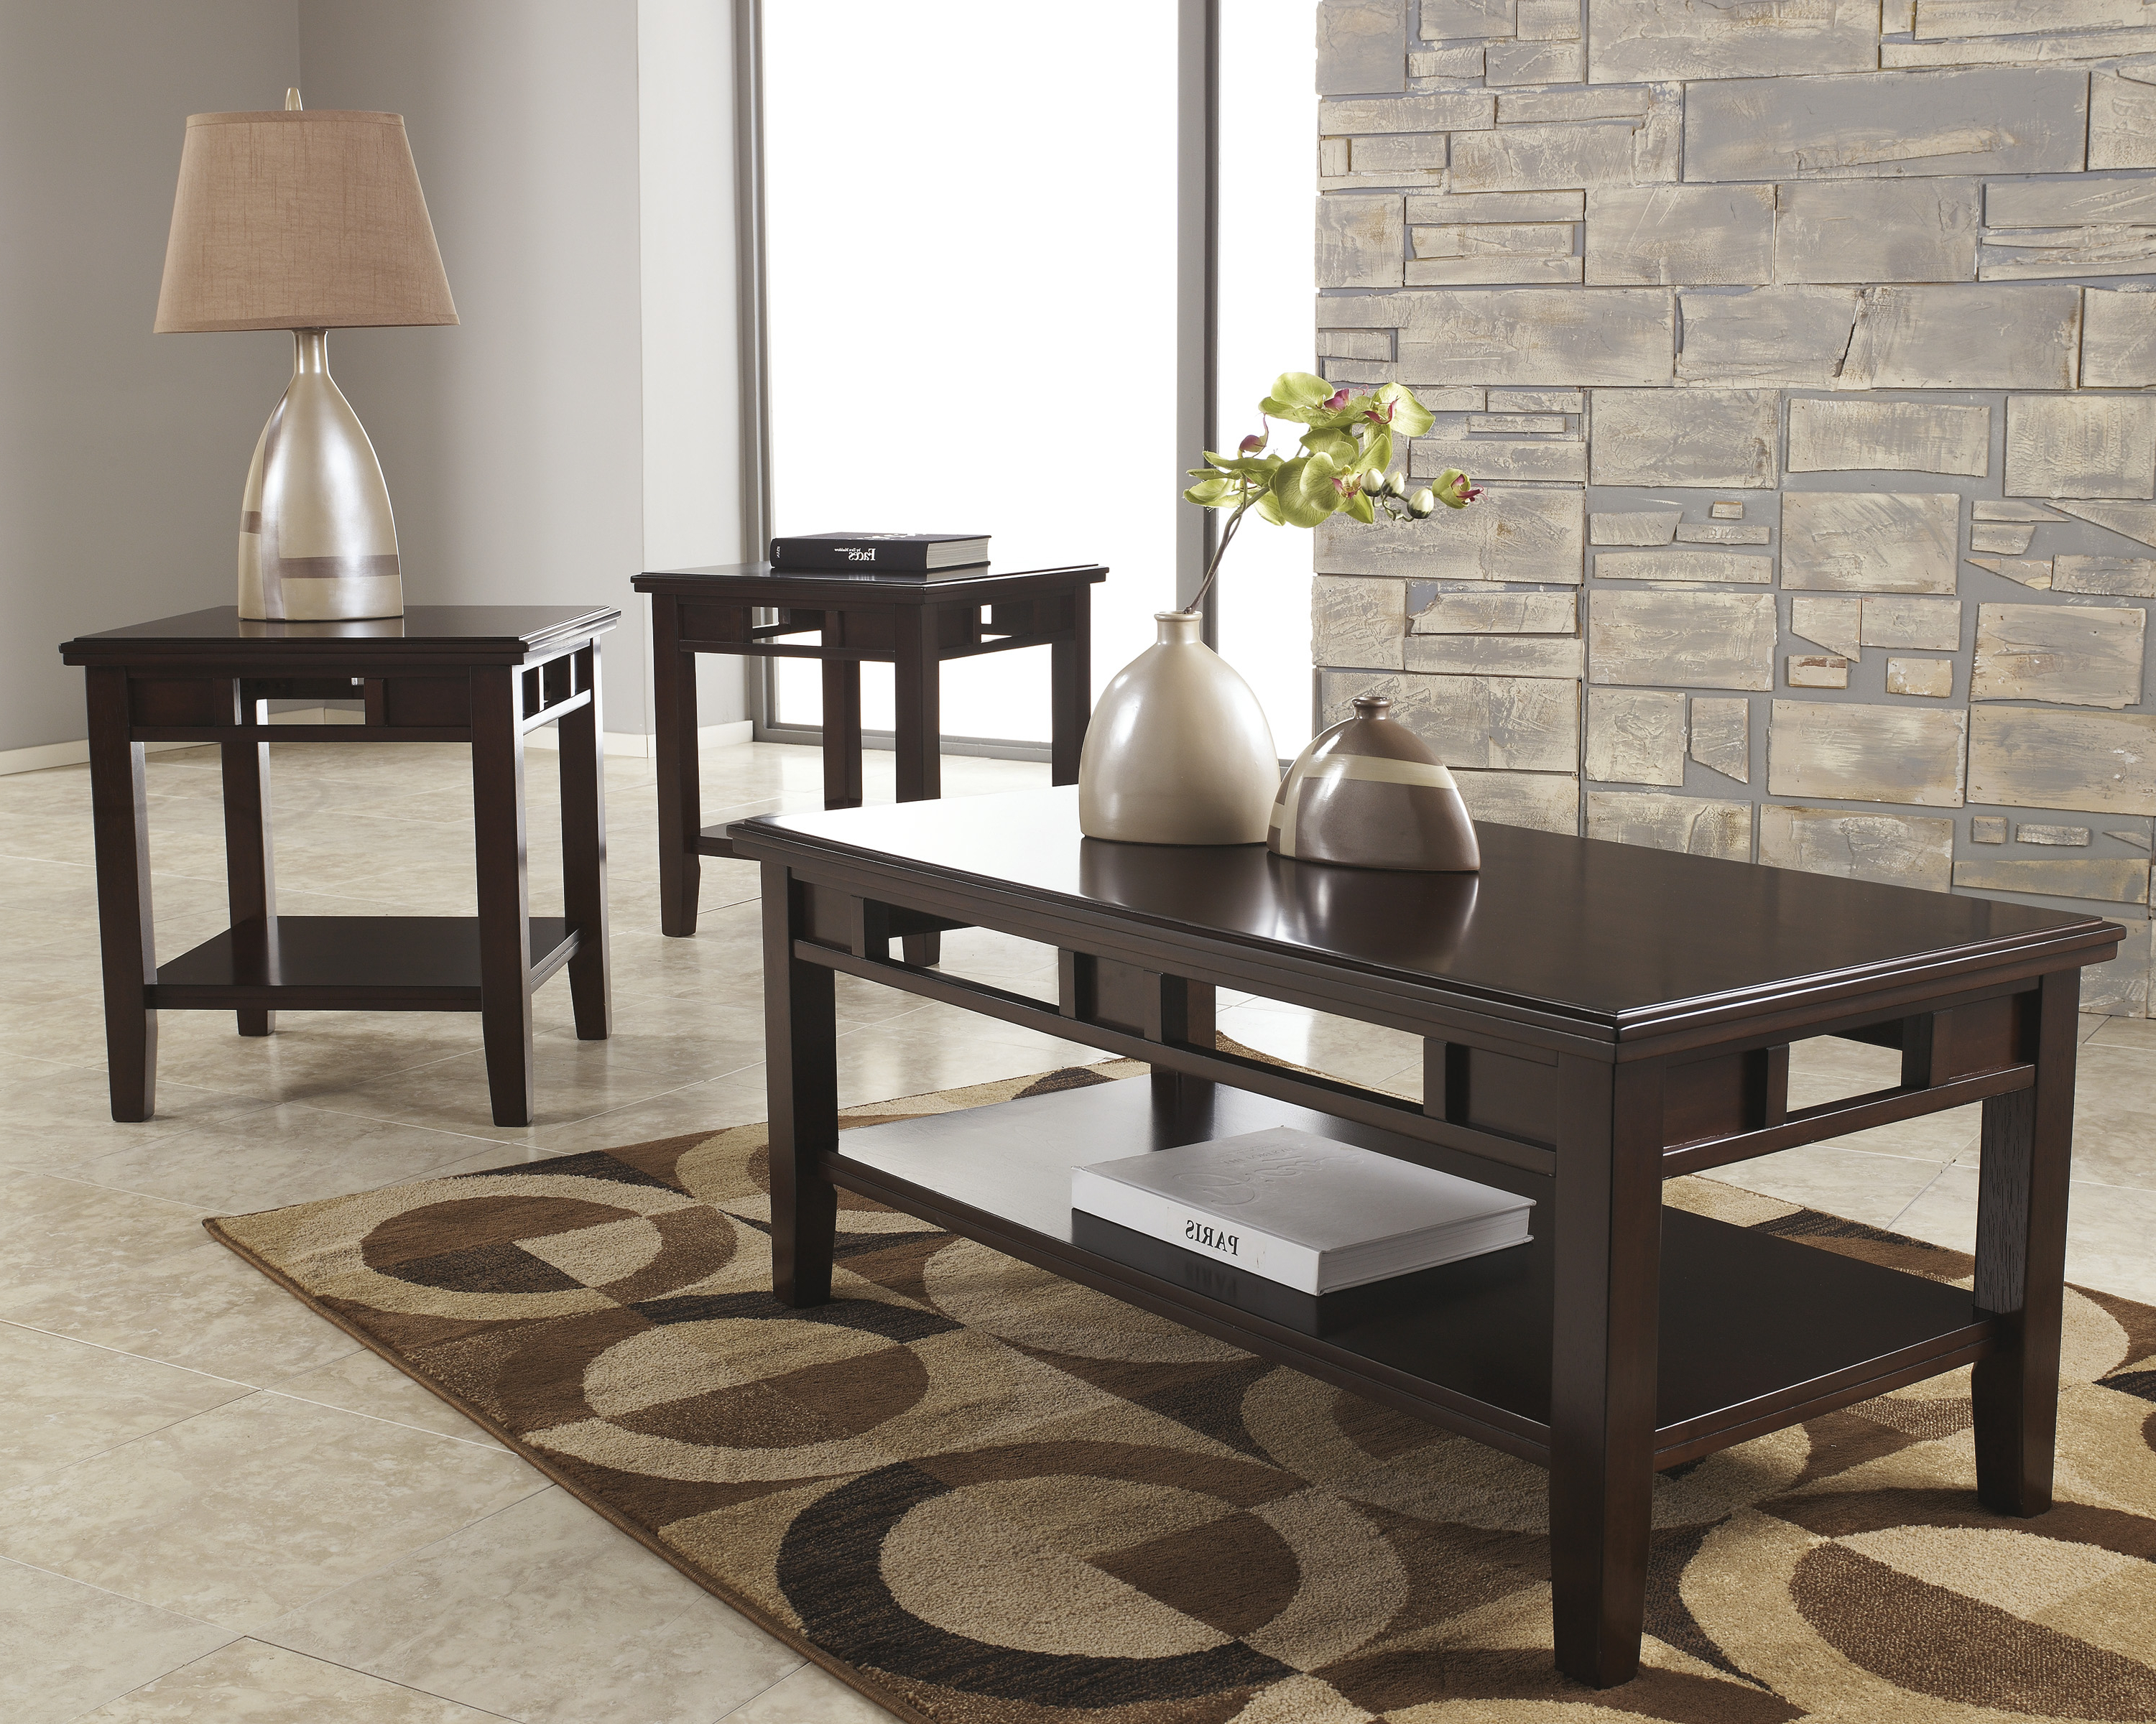 Current Logan Cocktail Tables In Logan Table Set – Brown's Furniture Showplace (Gallery 6 of 20)